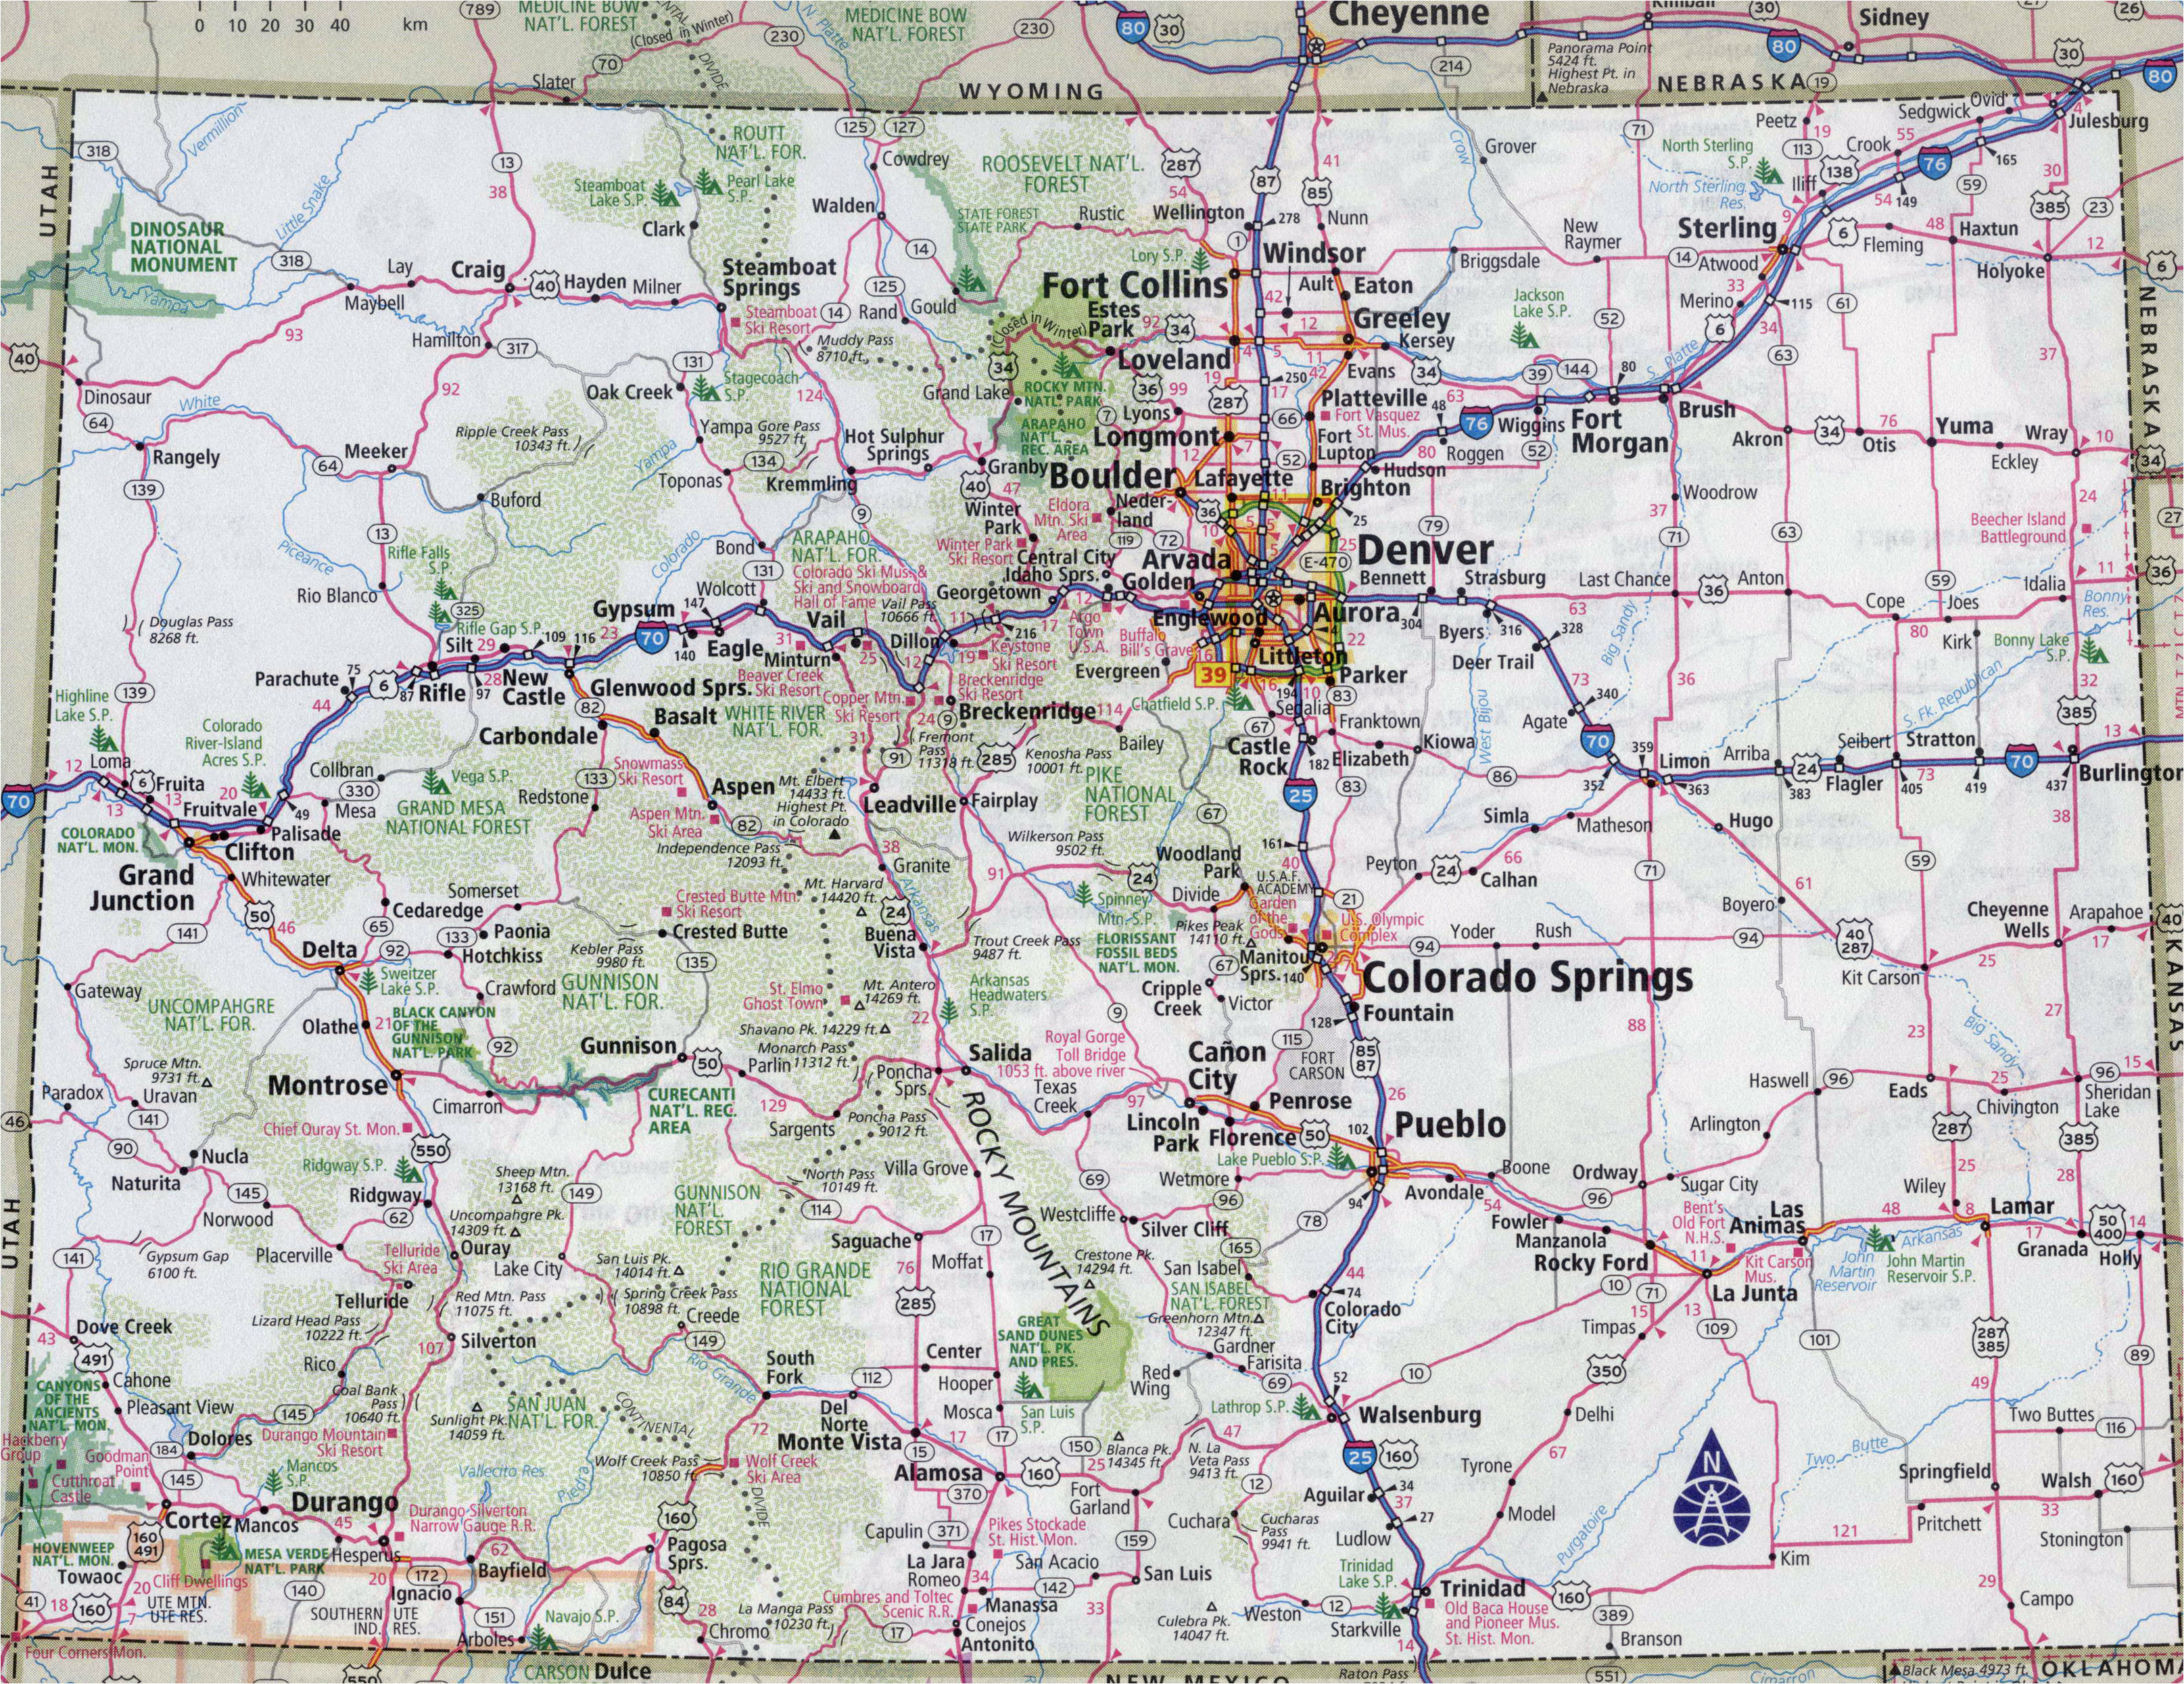 Colorado 13ers Map Lake forest Google Maps Outline Detailed ...